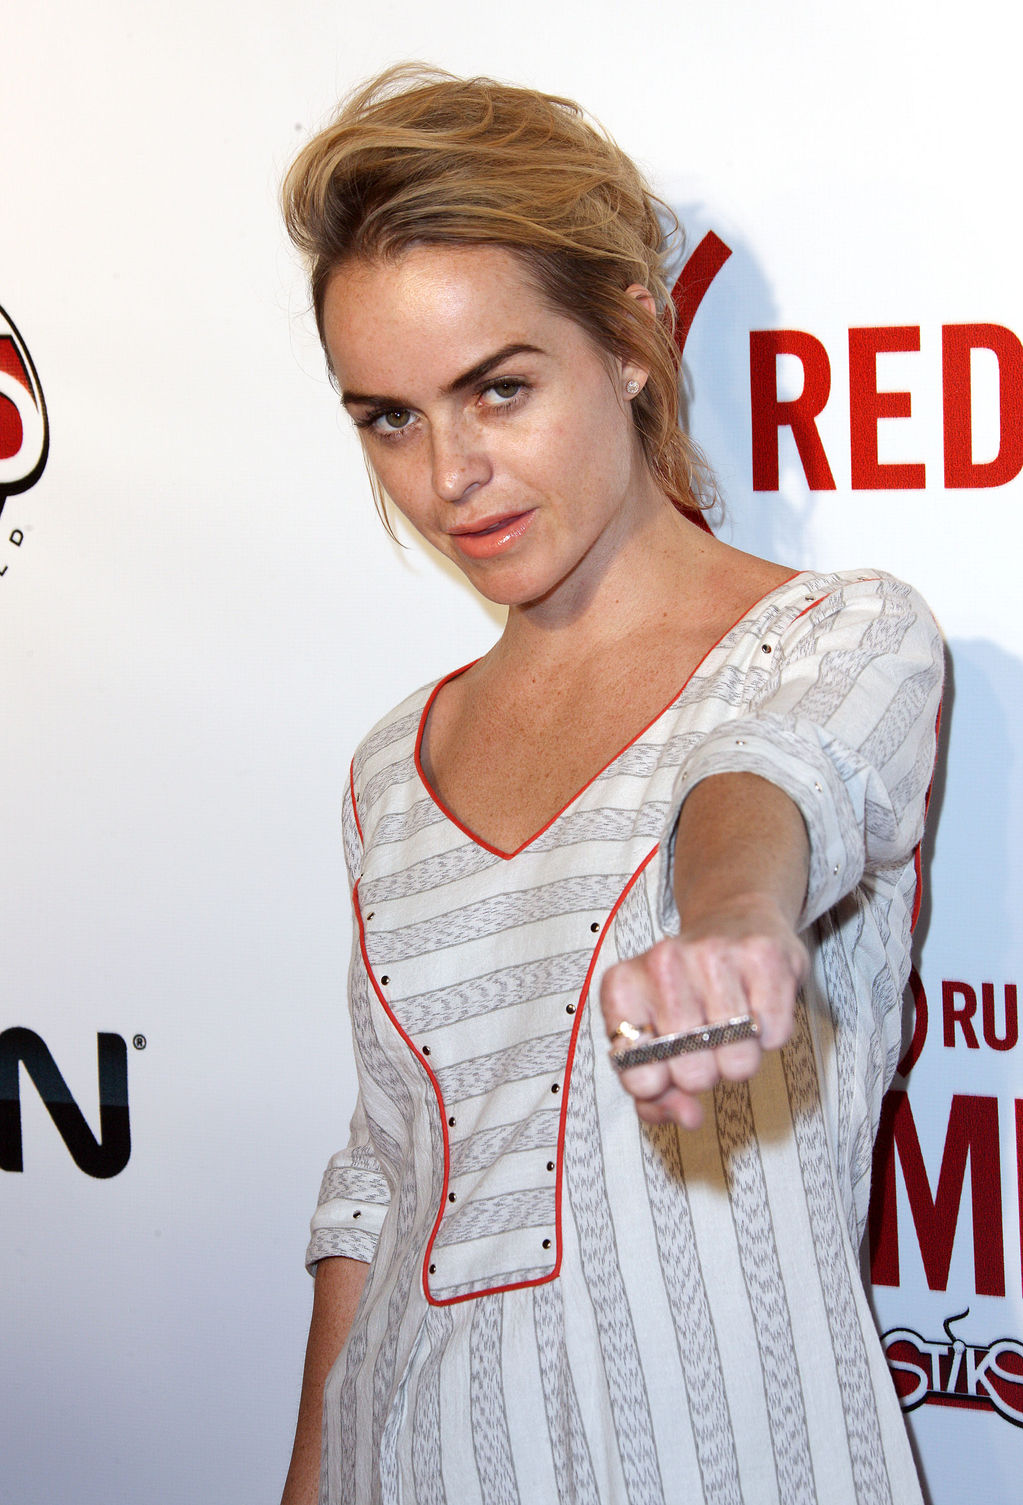 Taryn Manning - The (RED) RUSH Games Party at Avalon Hollywood - June 7, 2012